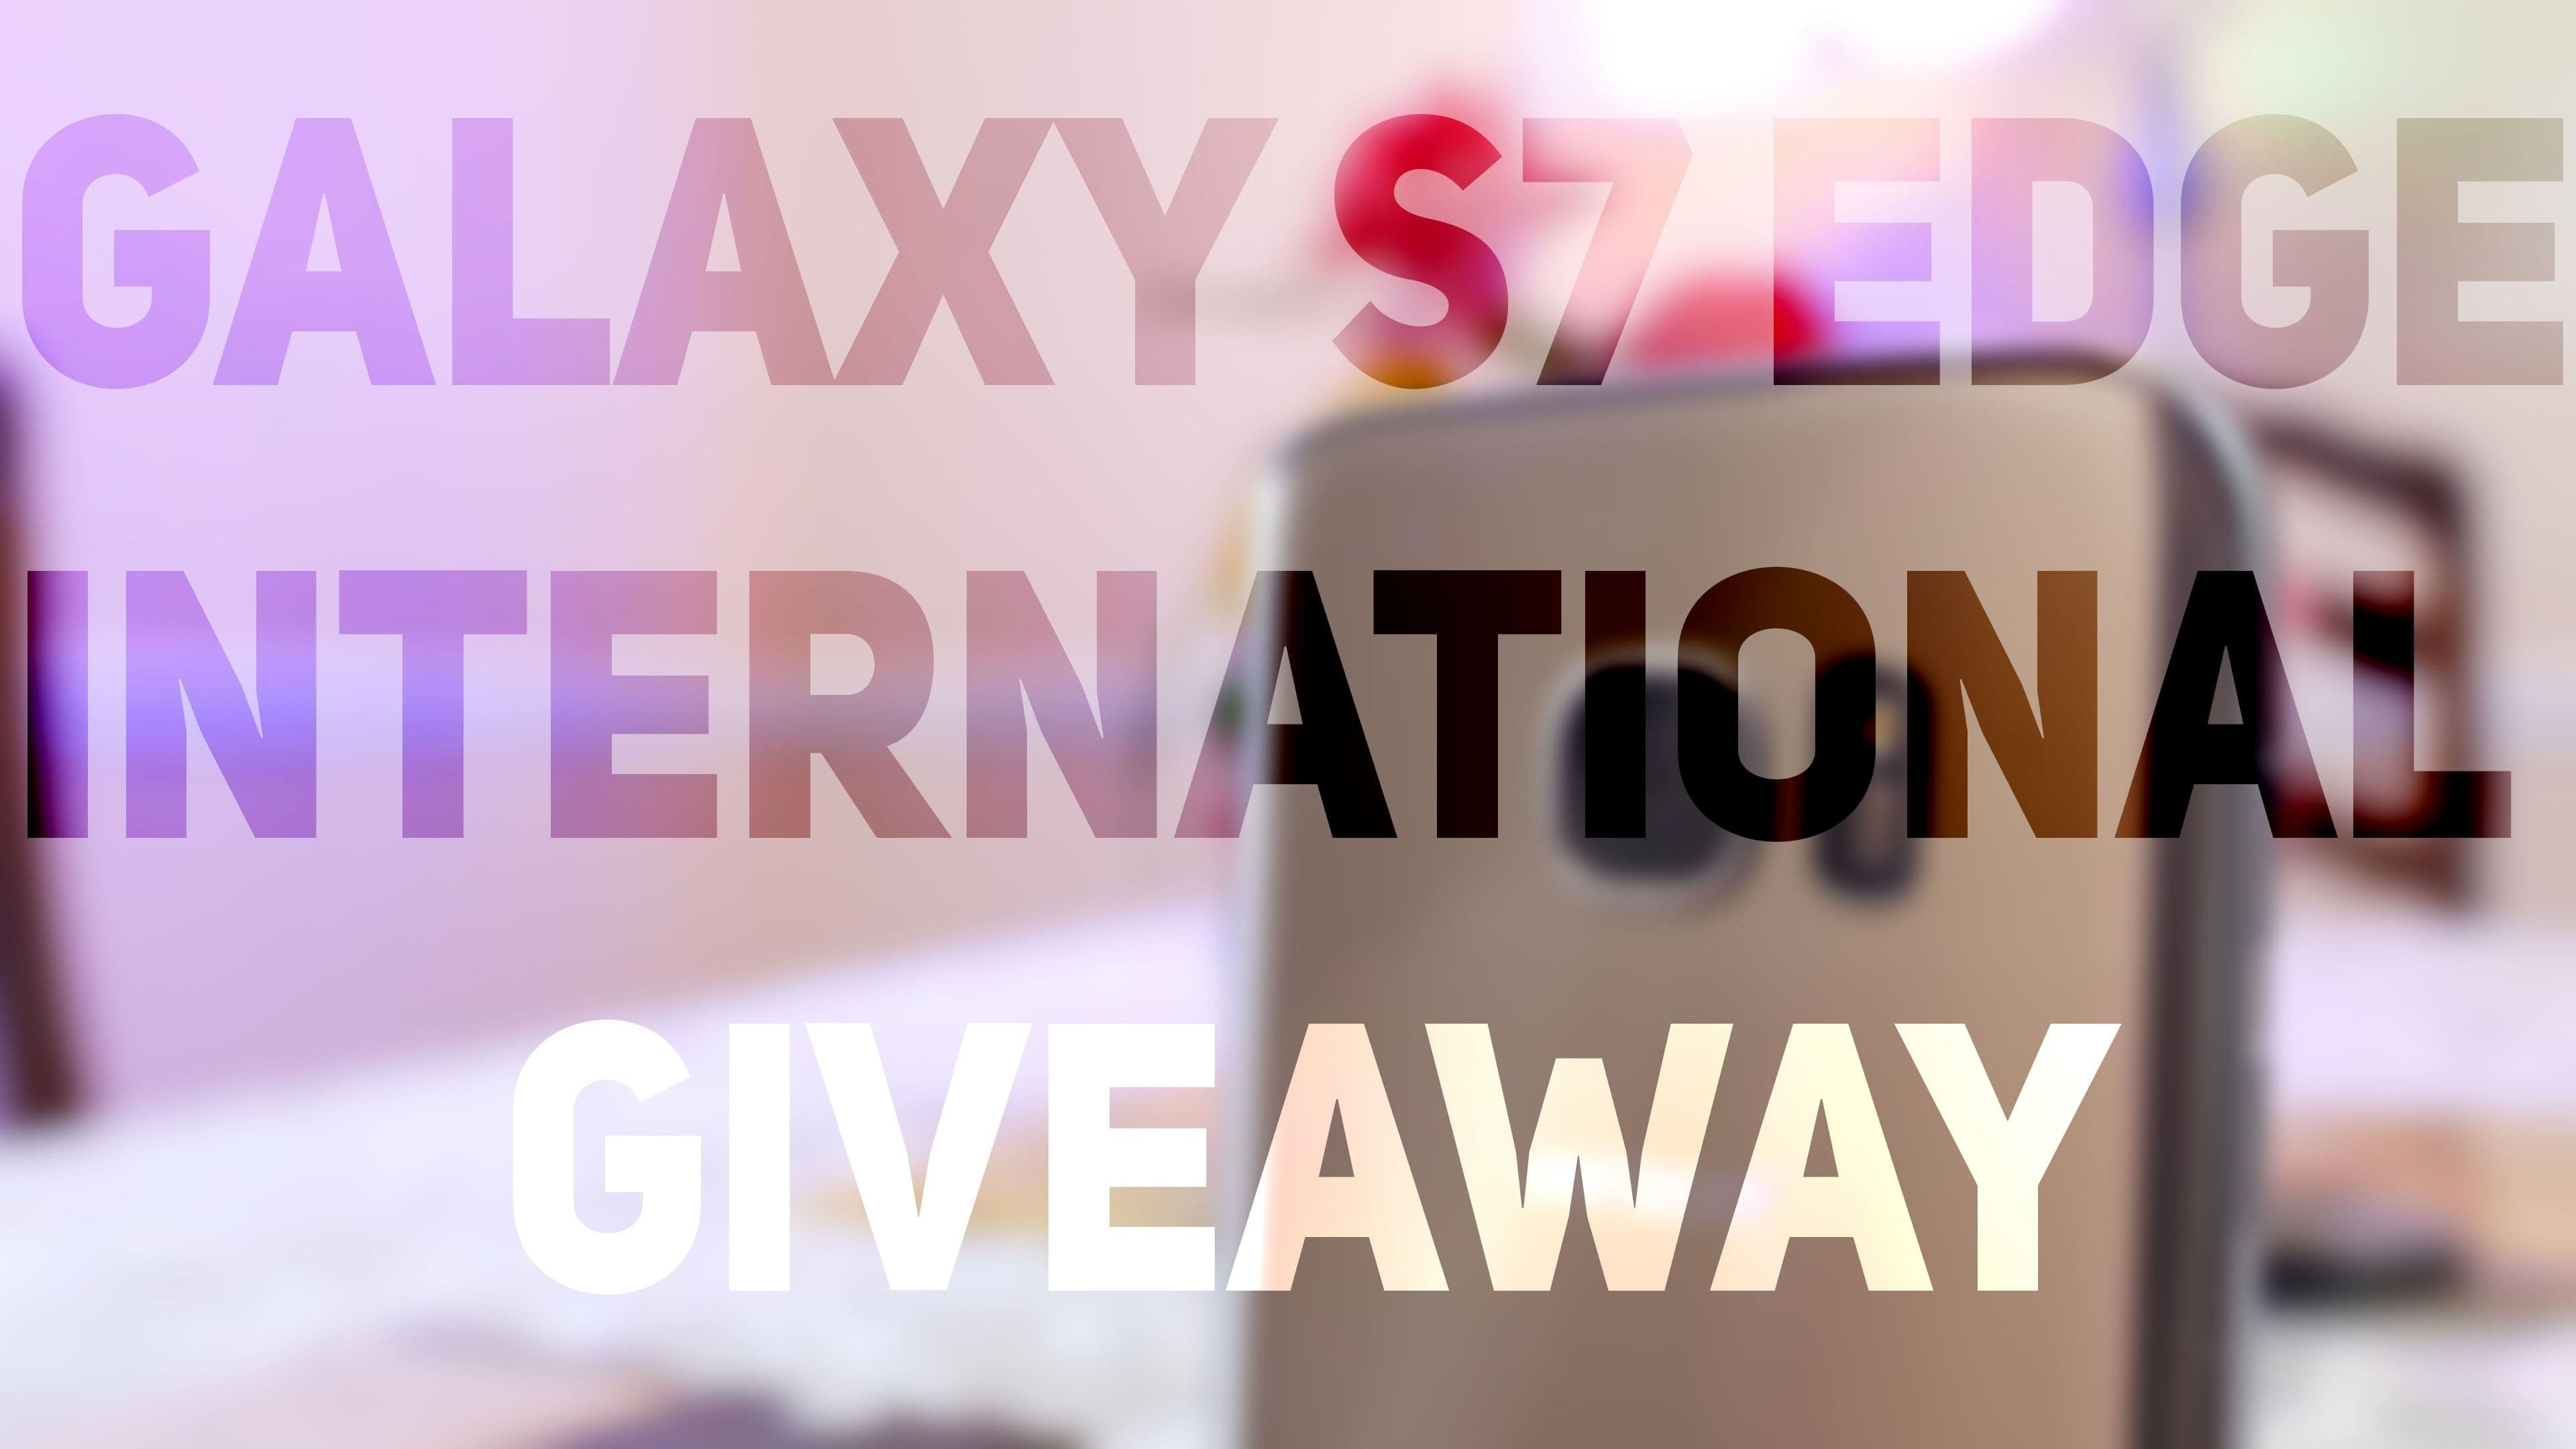 Samsung Galaxy S7 Edge International Giveaway. Giveaway End : August 17, 2016. Enter Here To Win : https://wn.nr/8wkE6n